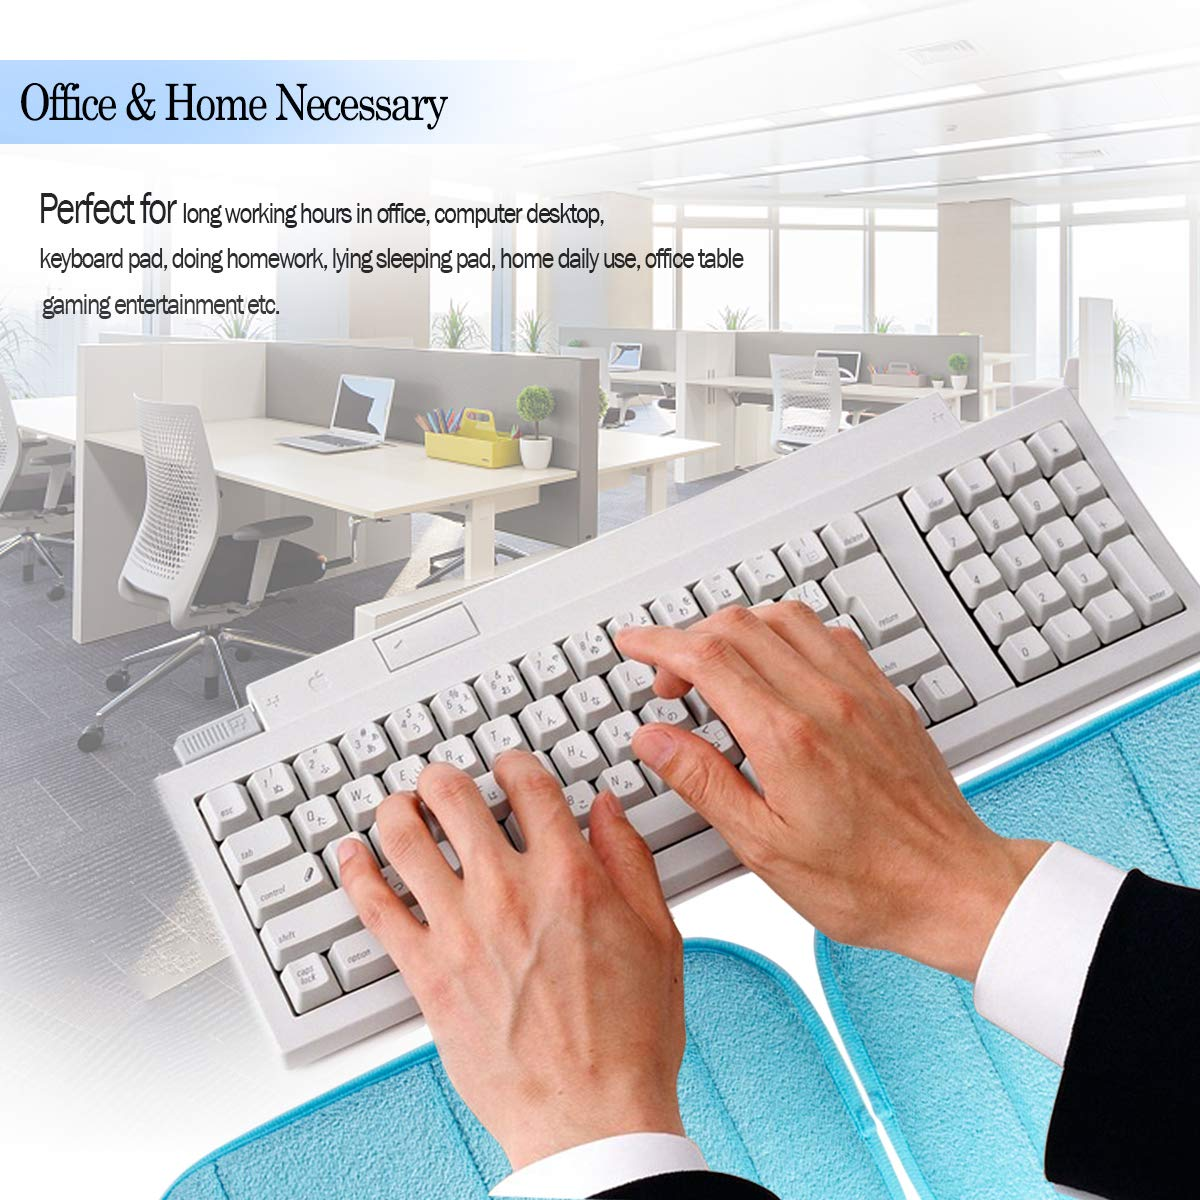 Blue Hatisan Premium Memory Cotton Desktop Keyboard Arm Rest Support Mat for Office Home Laptops 7.9 x 11.8 Inch More Comfort /& Less Strain 2 Pack Portable Computer Elbow Wrist Pad